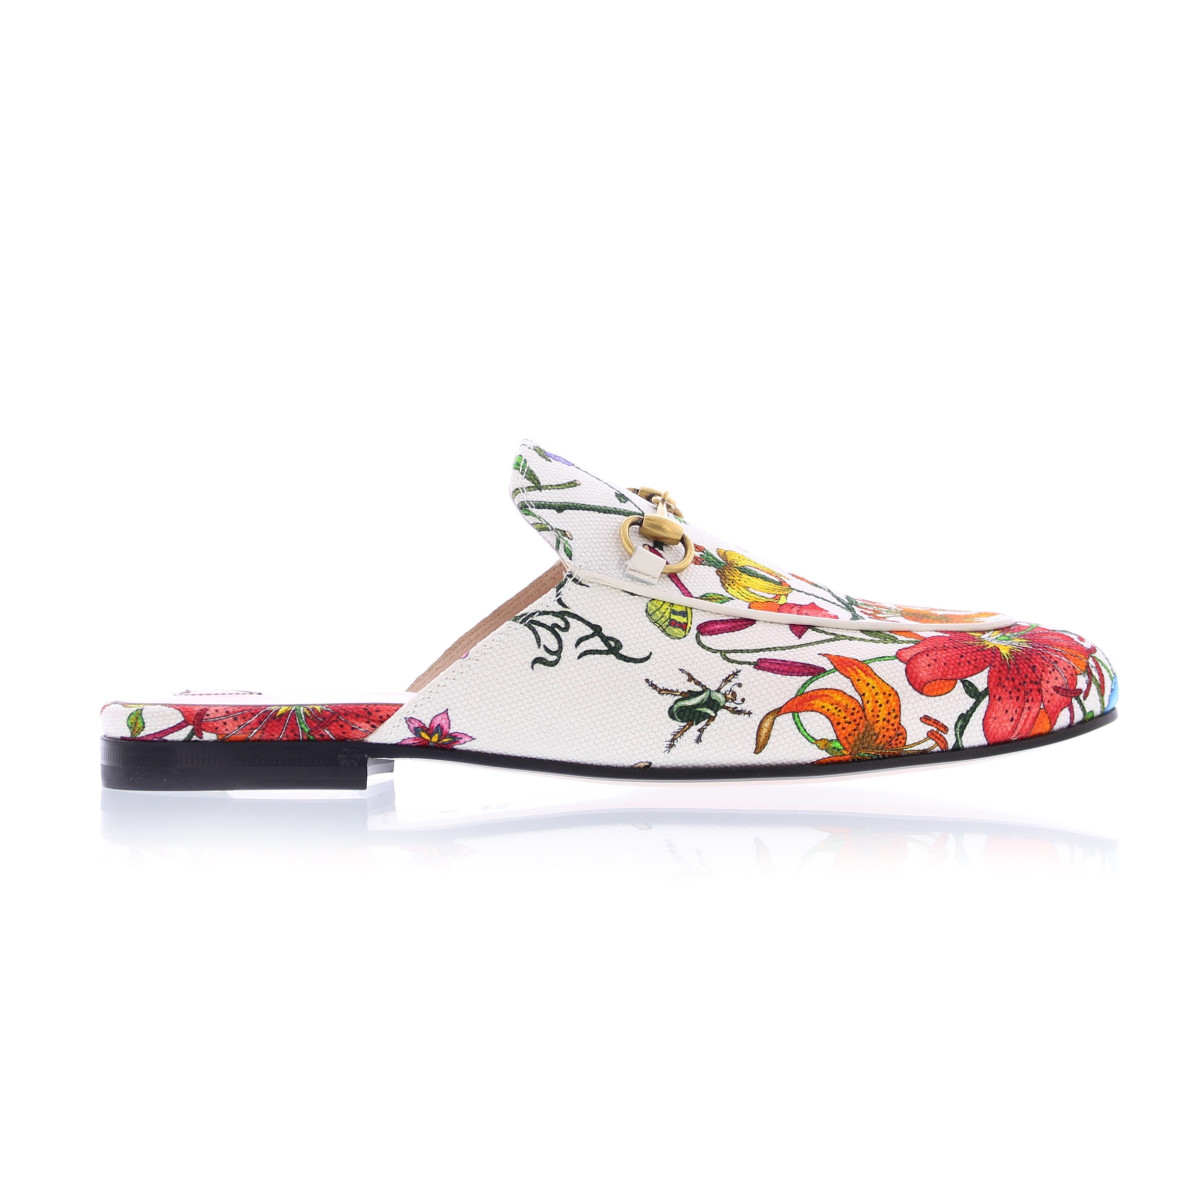 Gucci princetown canvas flora multi - shoebaloo.nl/